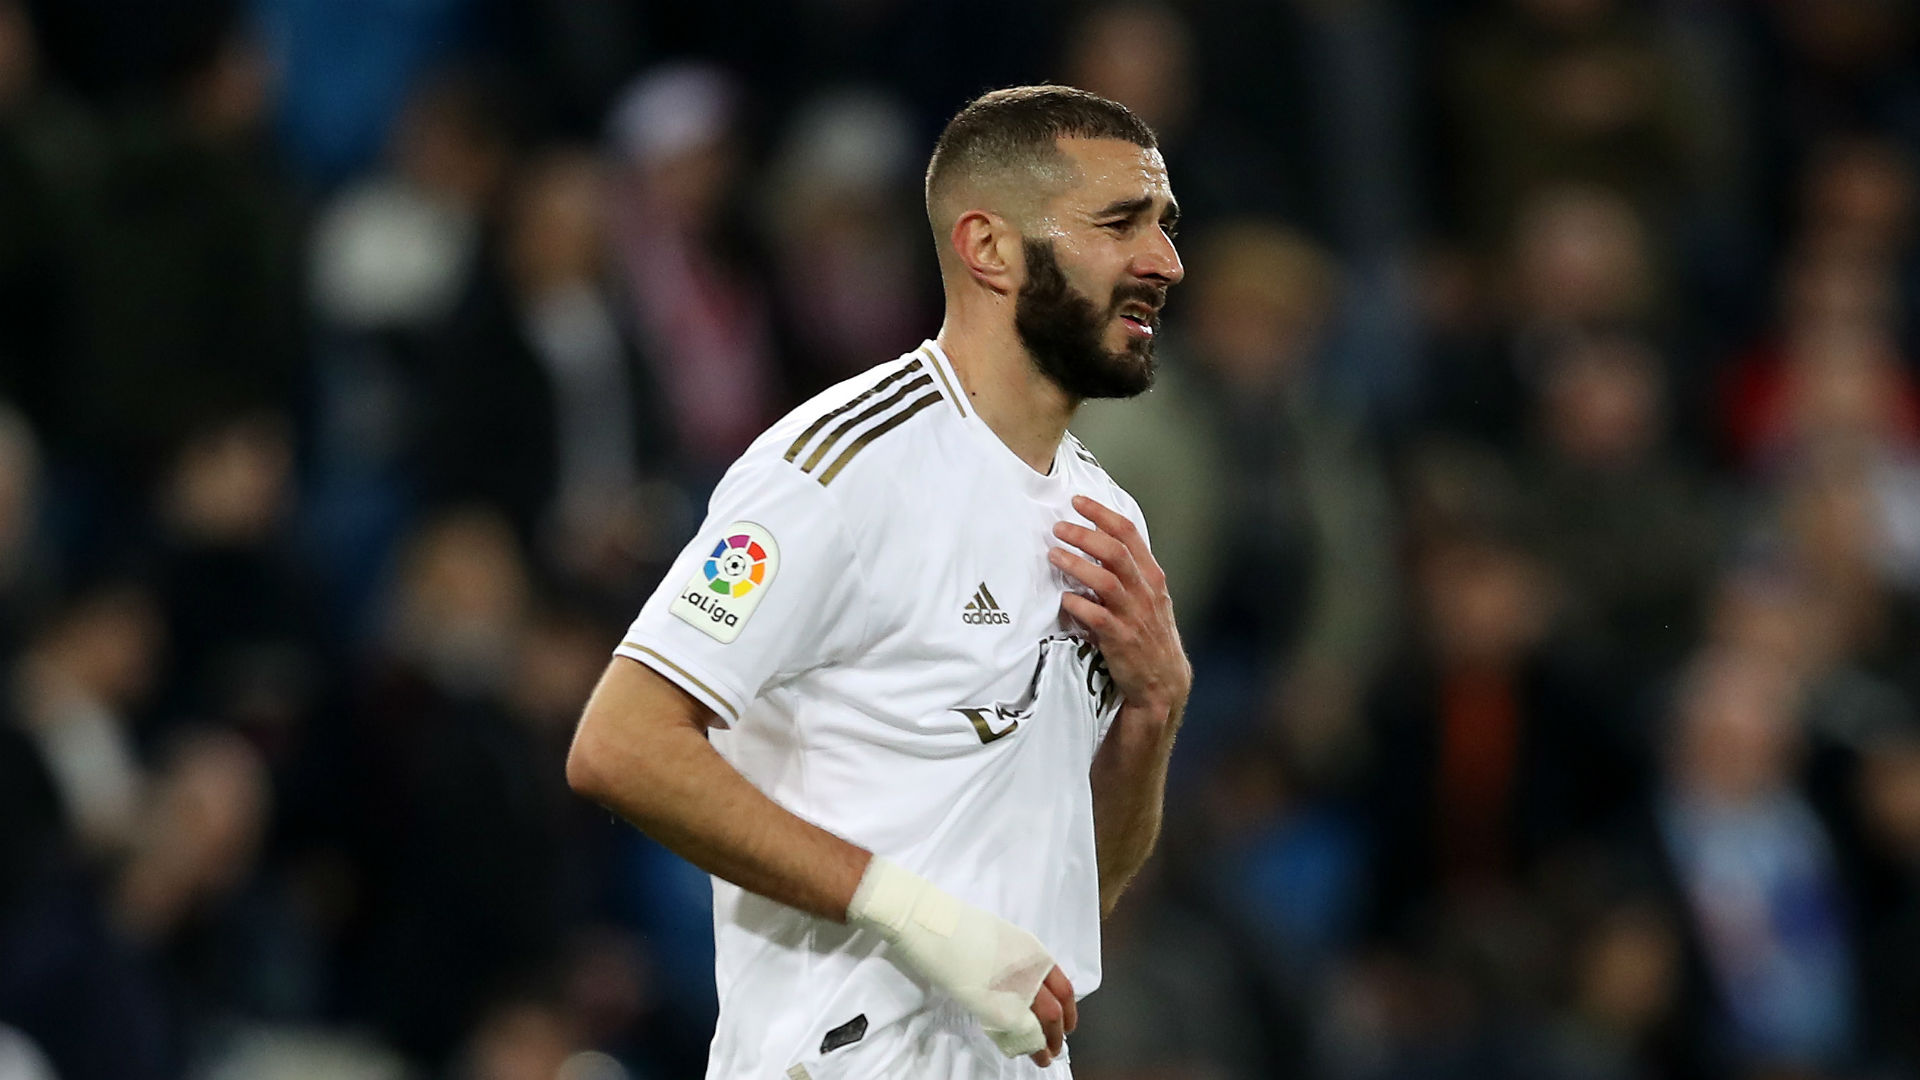 Karim Benzema aurait prolongé au Real Madrid